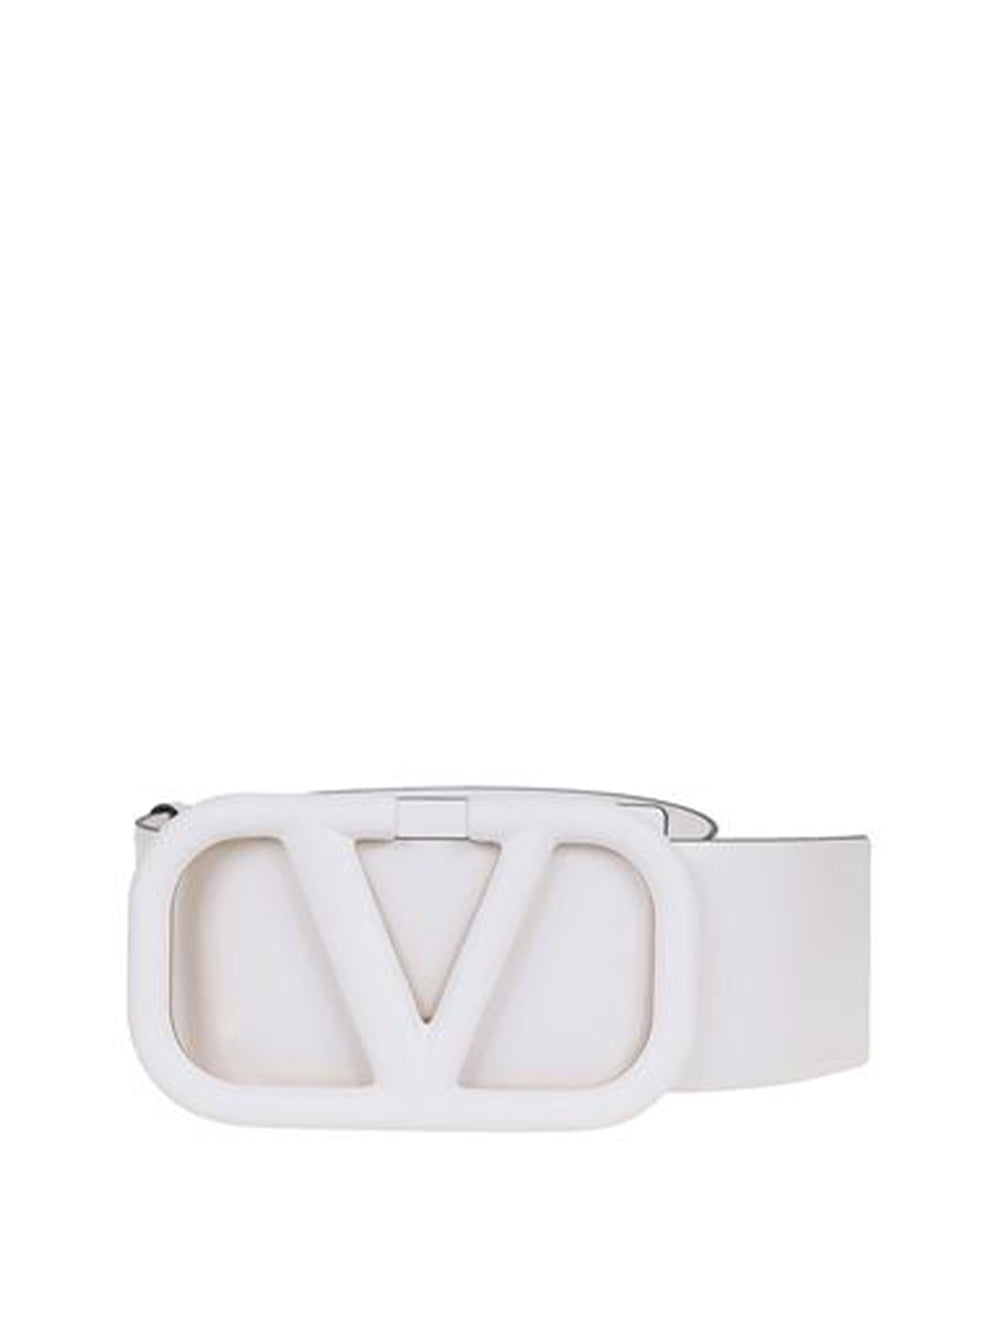 VLogo Leather Belt Buckle